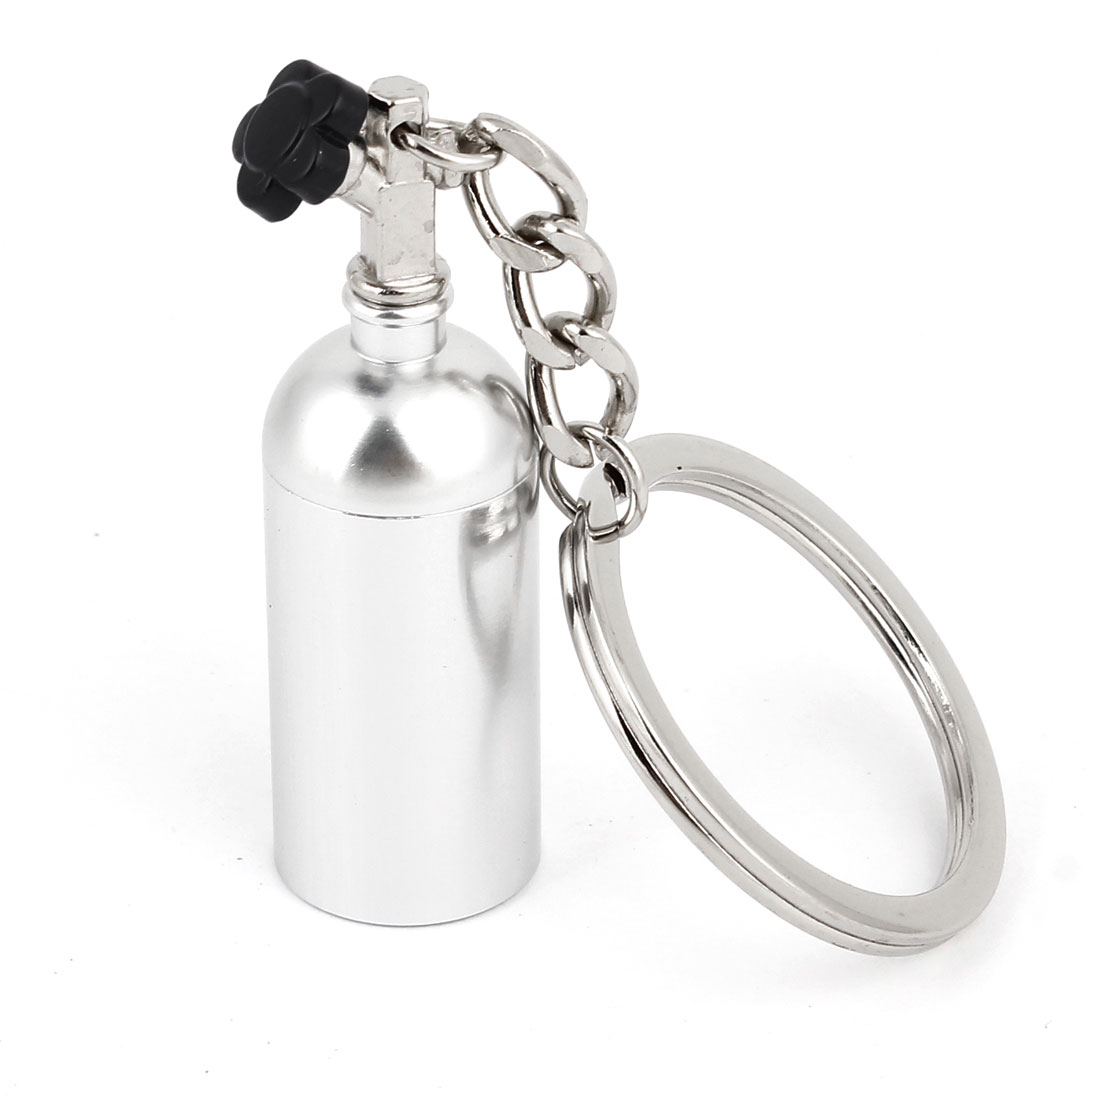 Silver Tone Metal Bottle Shape Pendant Split Ring Keychain Ornament